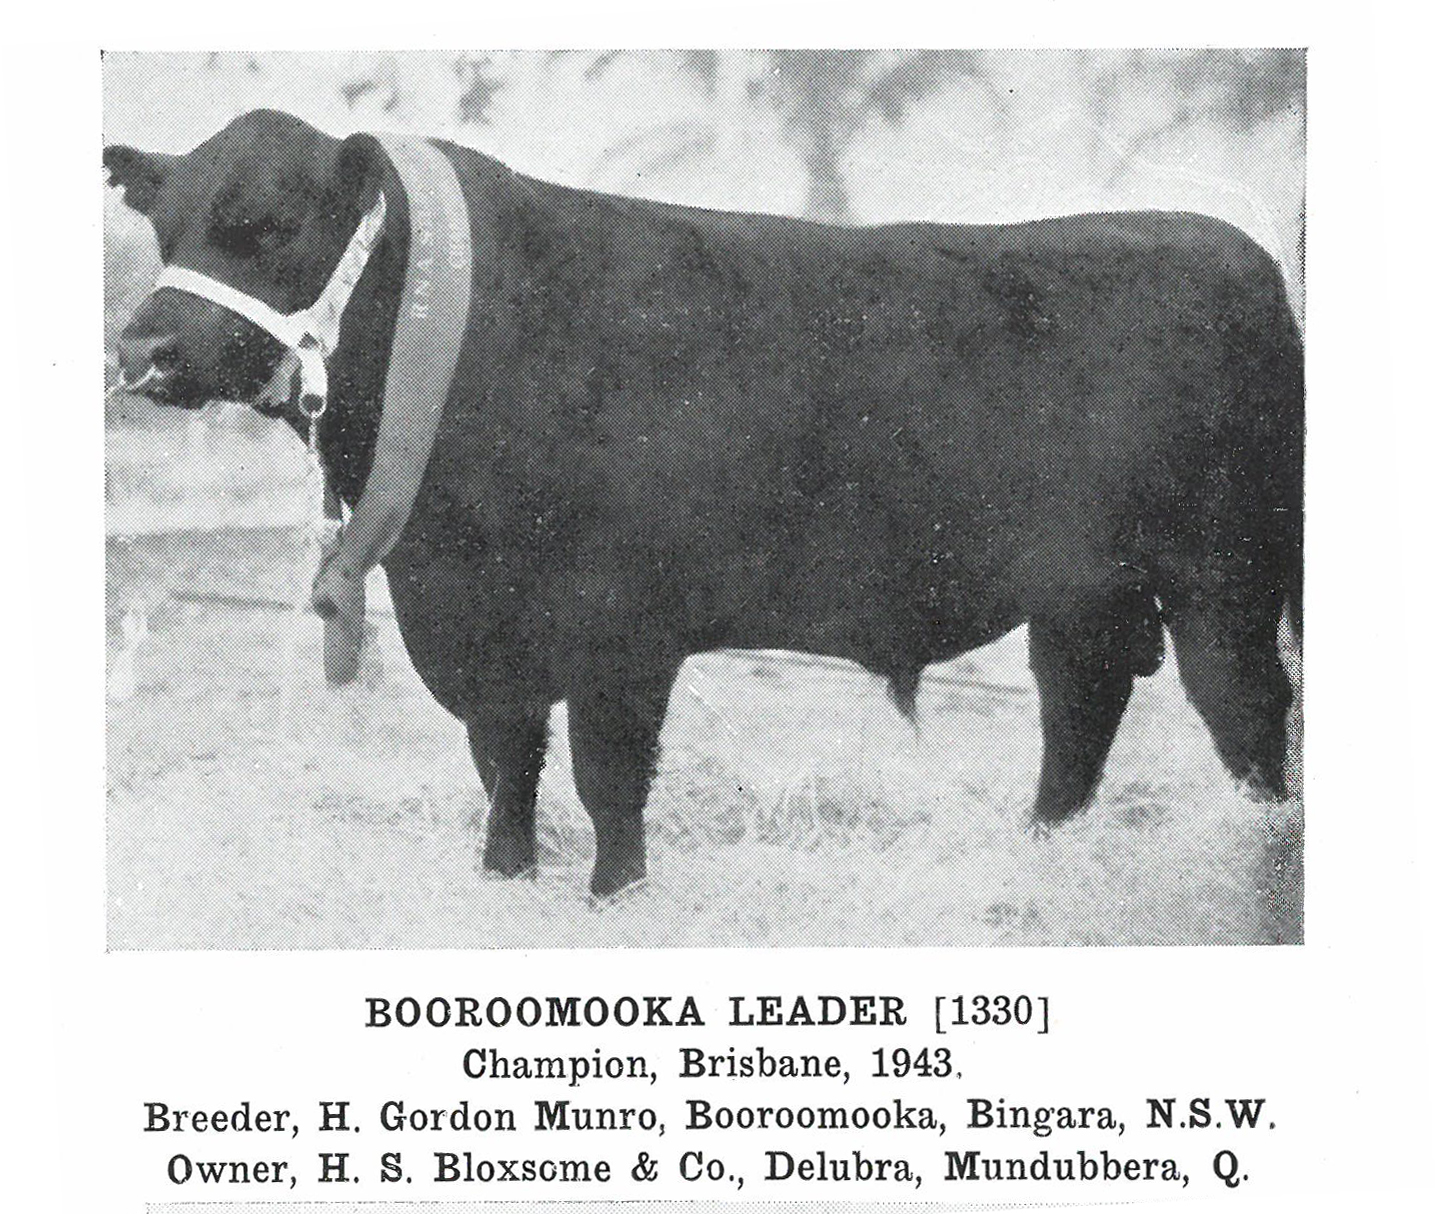 Booroomooka Leader